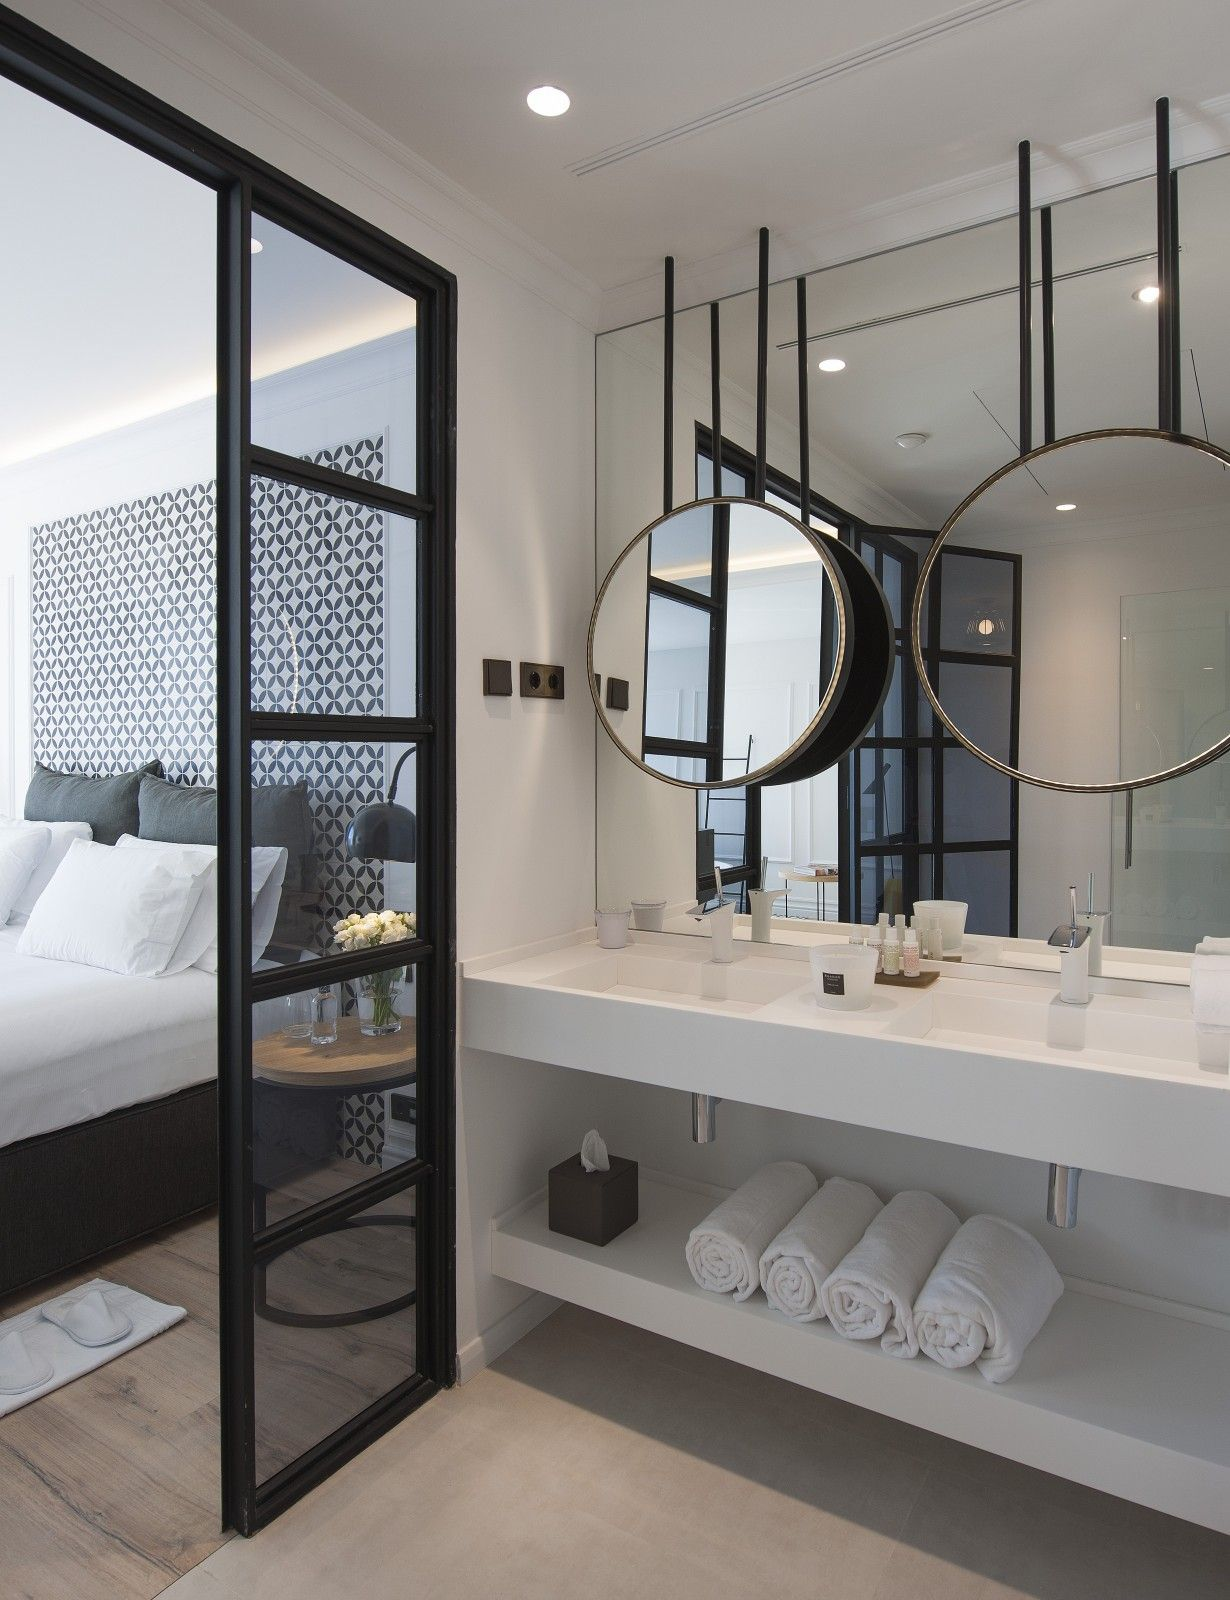 Hotel Room Designs: Luxury Hotel Gothic Quarter